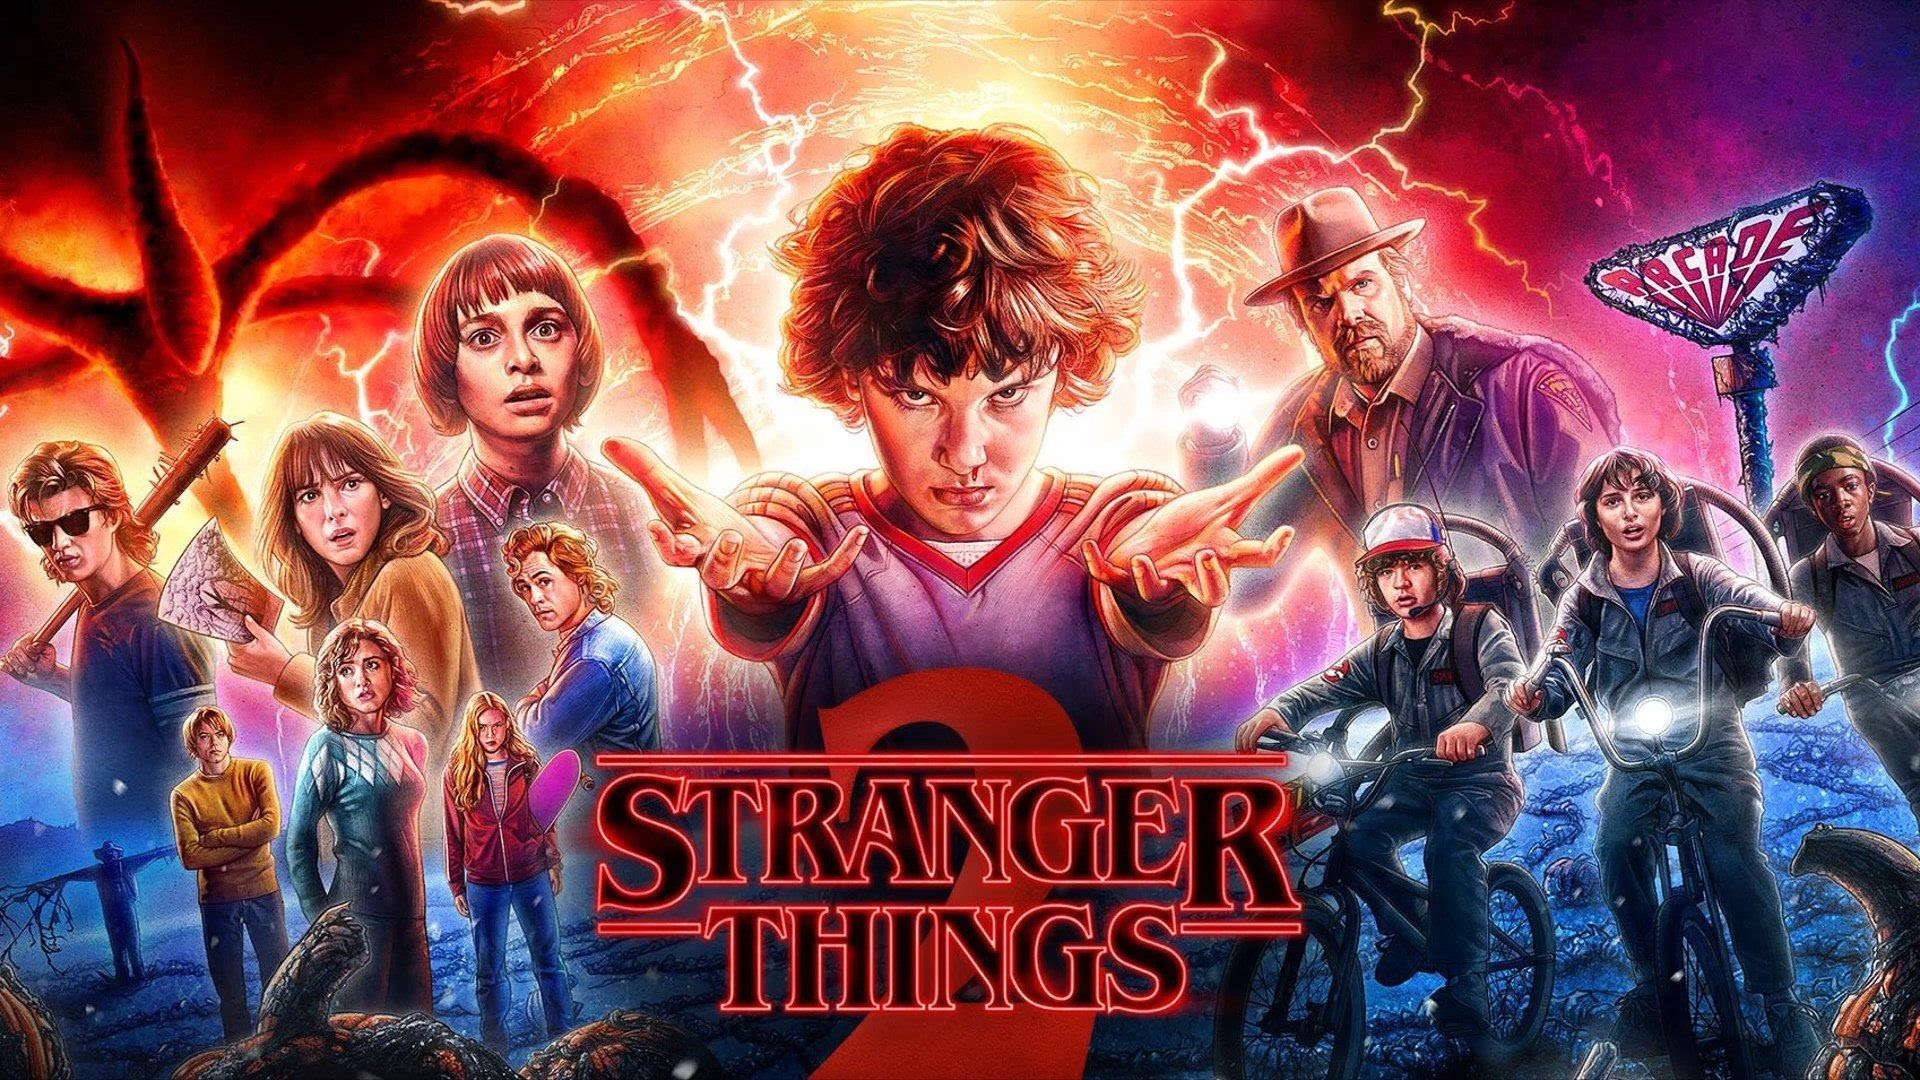 Stranger Things Season 3 Hd Wallpapers Posted By Michelle Thompson